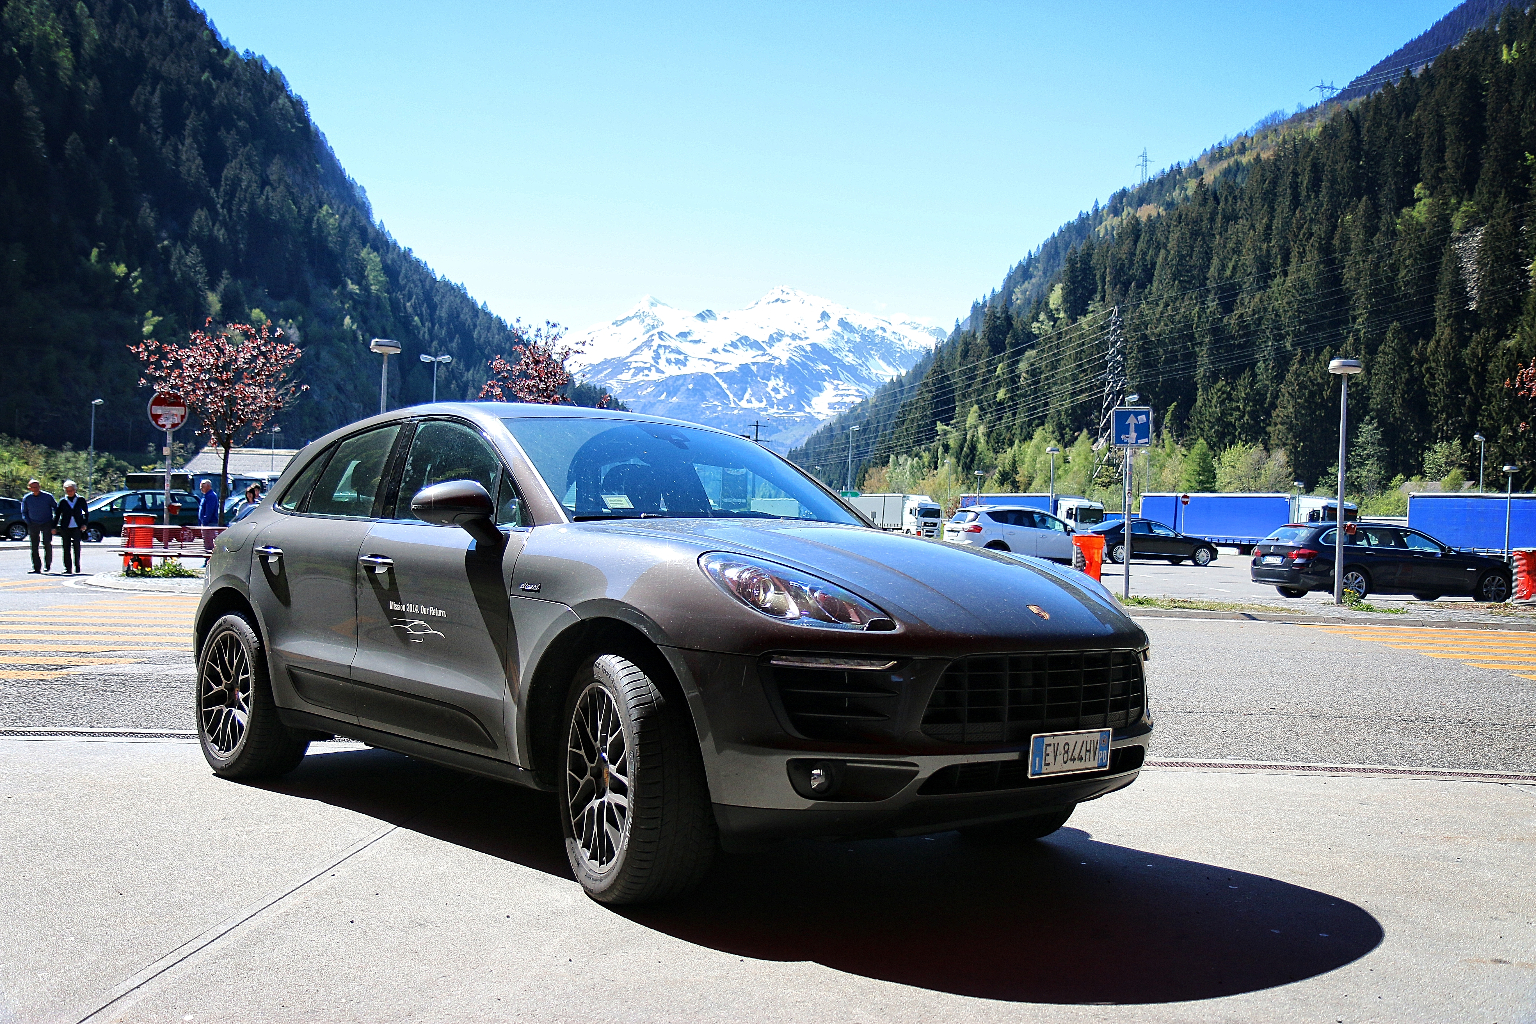 porsche macan s diesel la nostra prova su strada della tigre tedesca. Black Bedroom Furniture Sets. Home Design Ideas